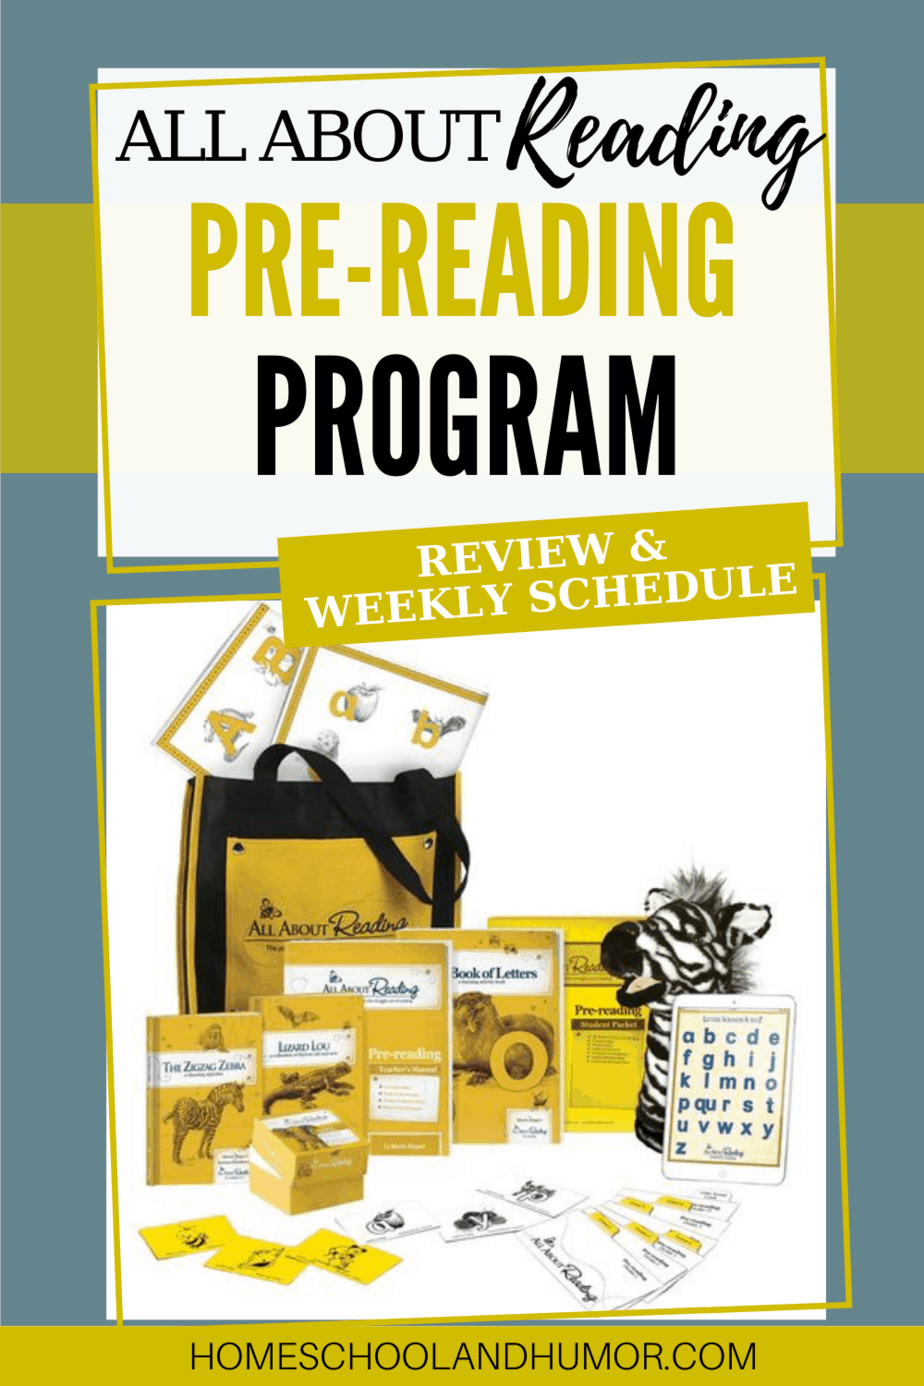 How We Use All About Reading Pre-Reading Program 2021 (Review)